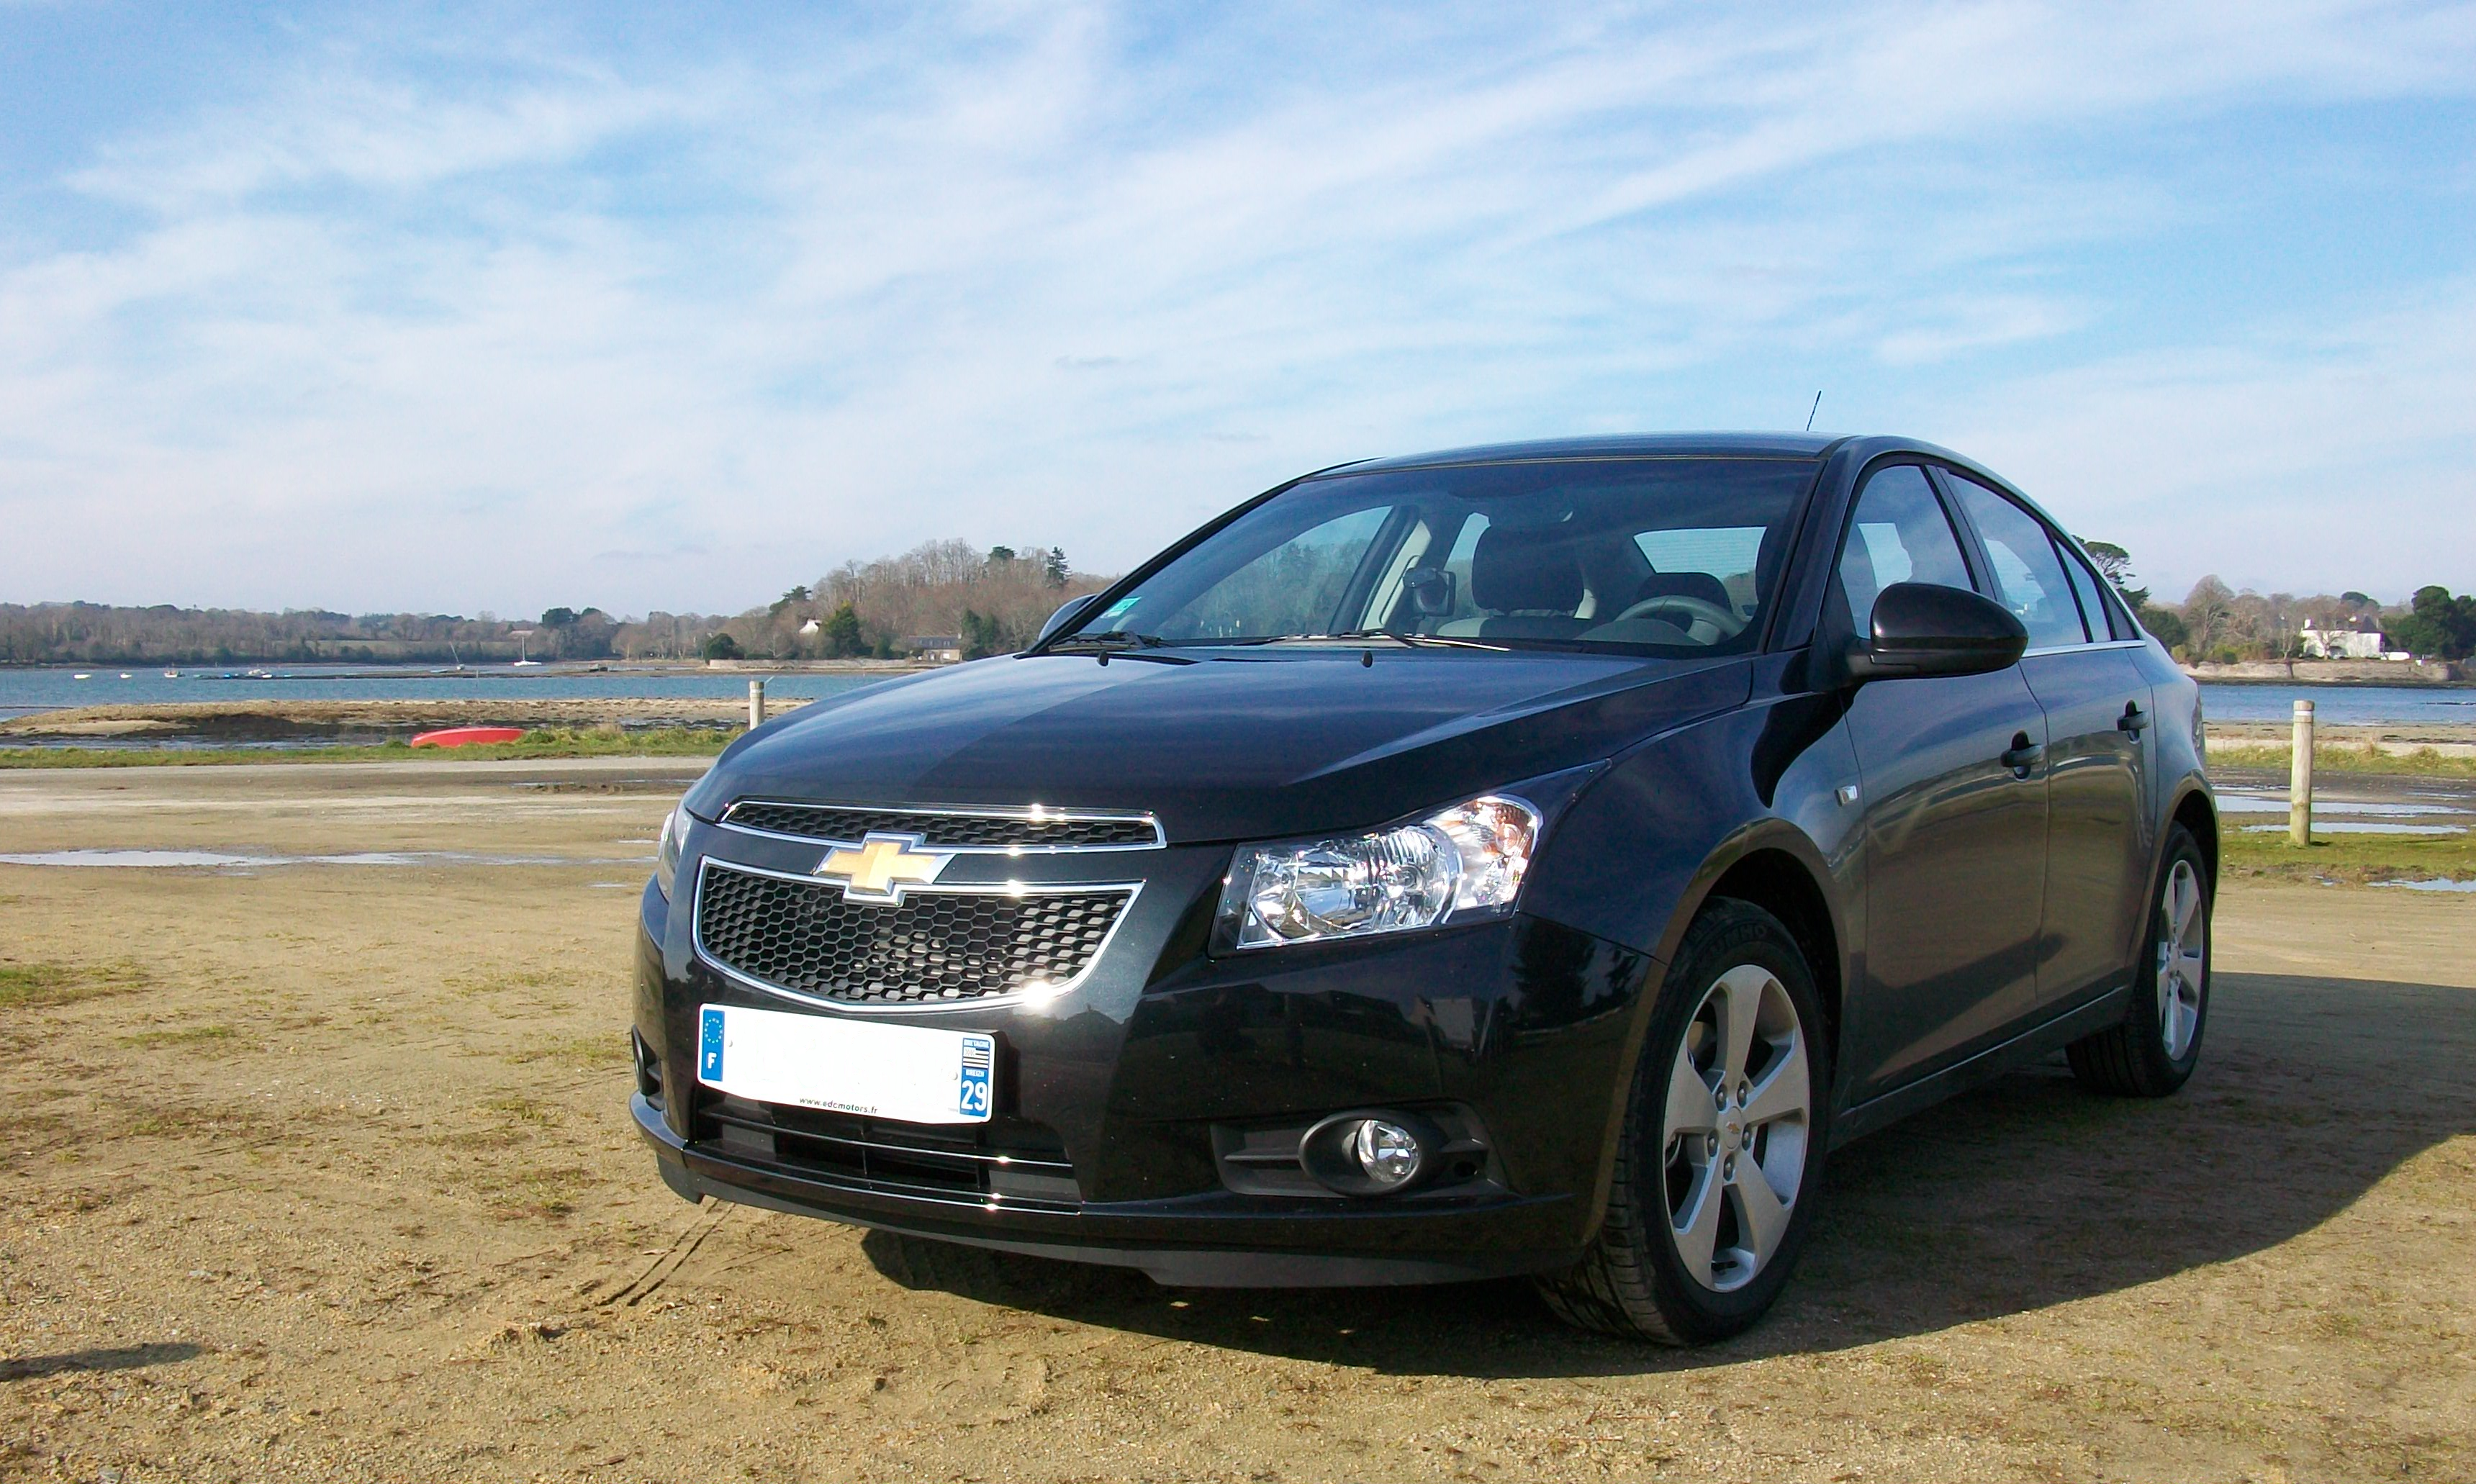 File:Chevrolet Cruze.png - Wikimedia Commons